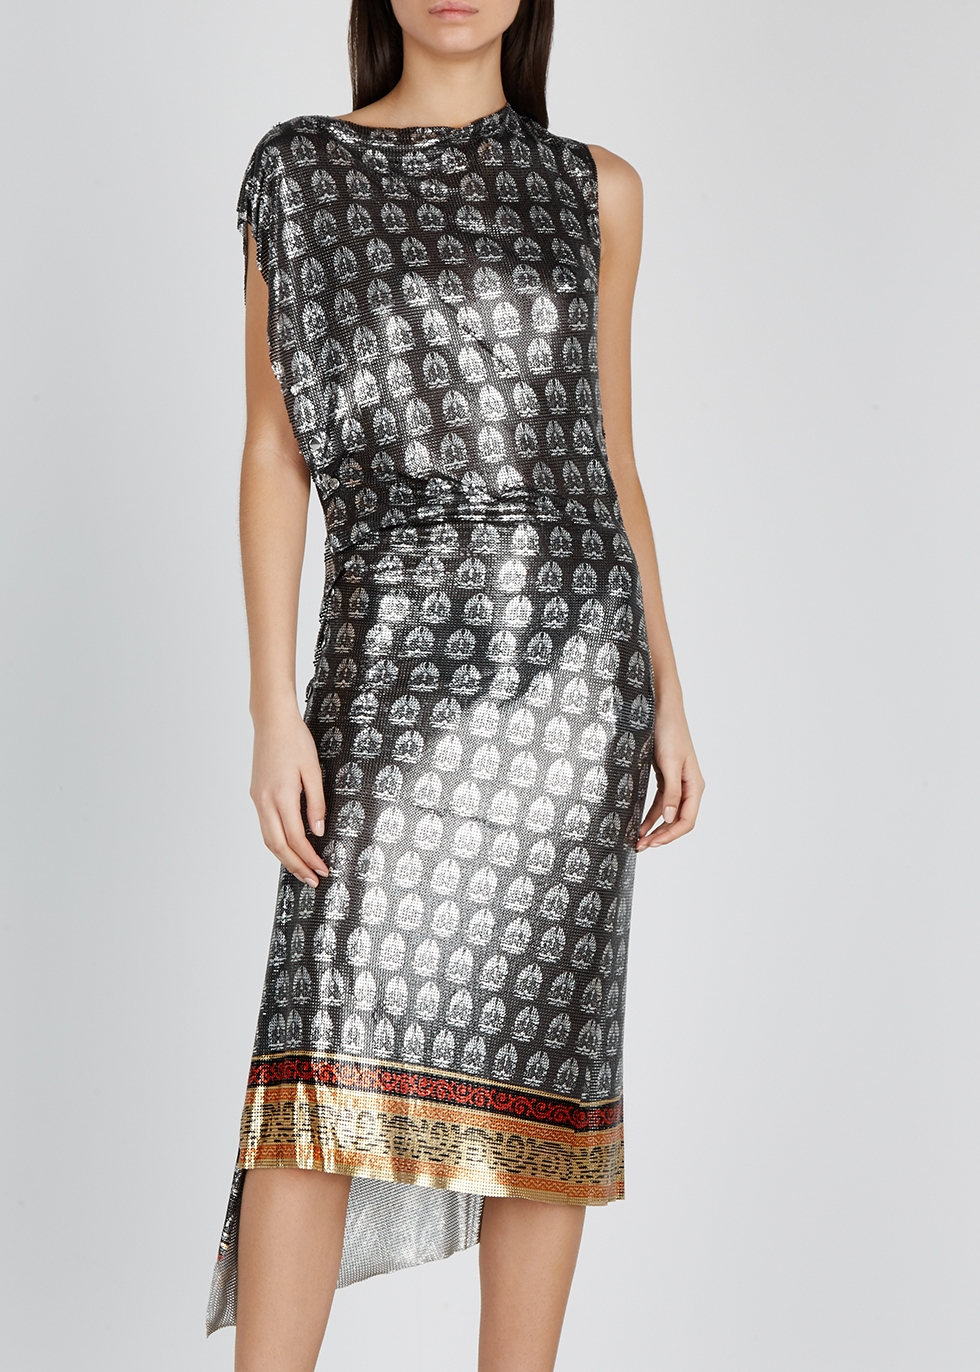 Printed draped chainmail dress - Paco Rabanne